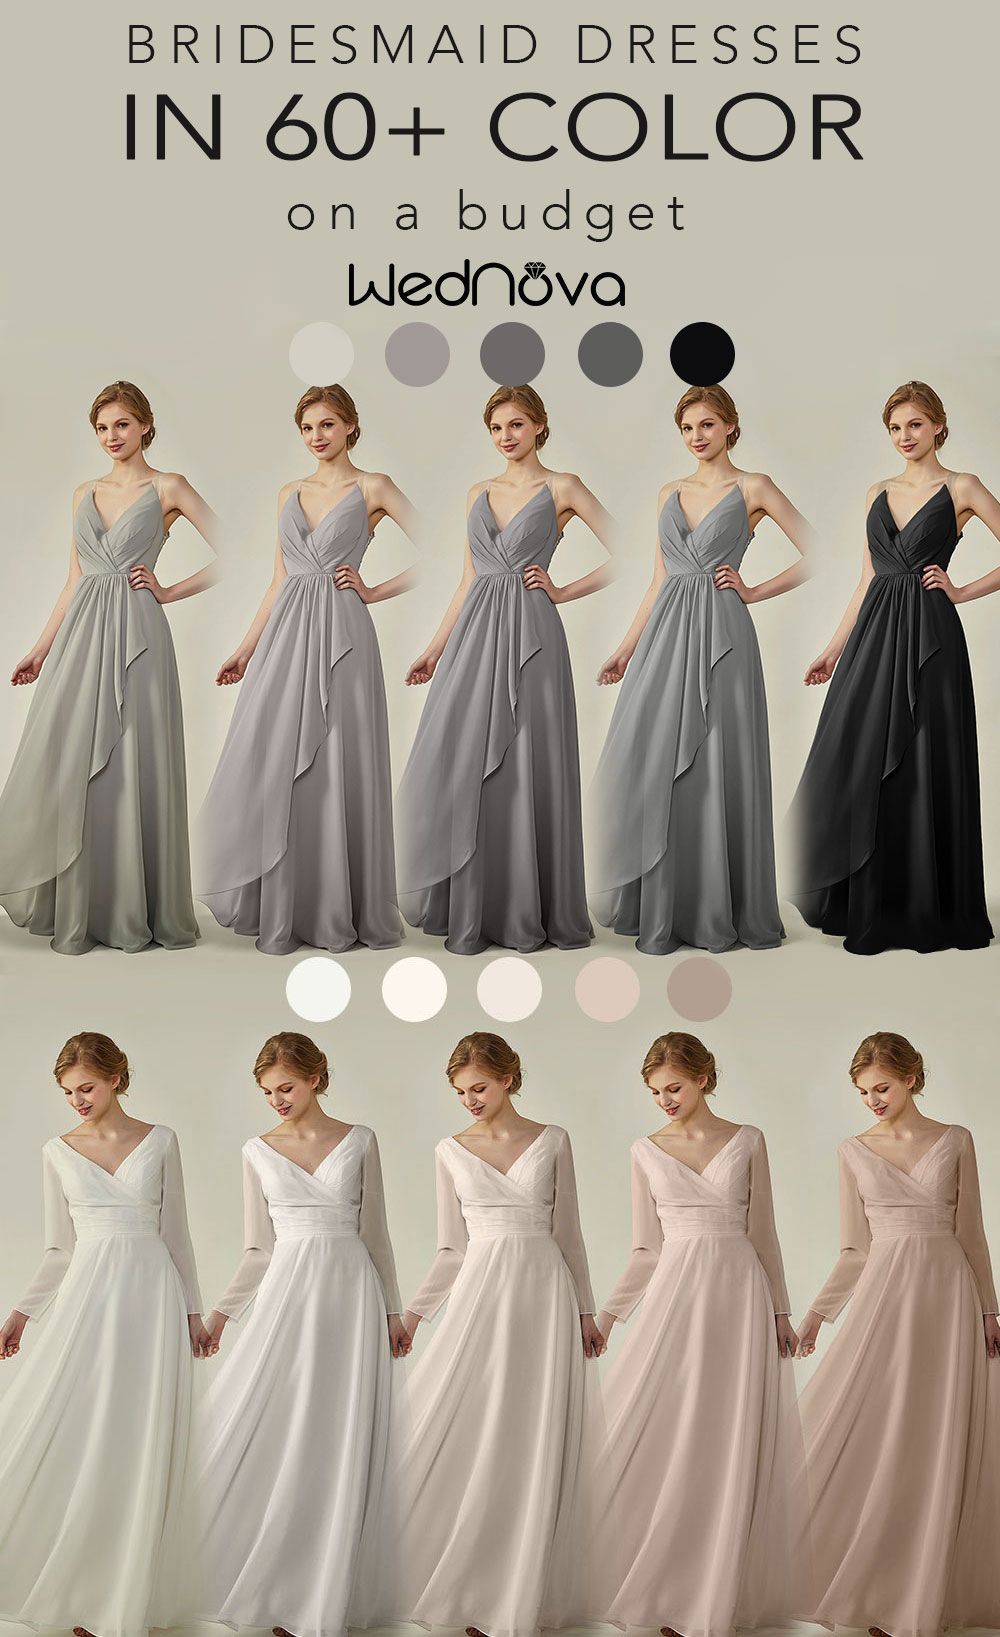 White Bridesmaid Dresses With Long Sleeves Gray Ruffle Bridesmaid Dresses Brides Wedding Dresses 2017 Trend White Bridesmaid Dresses Ruffles Bridesmaid Dresses